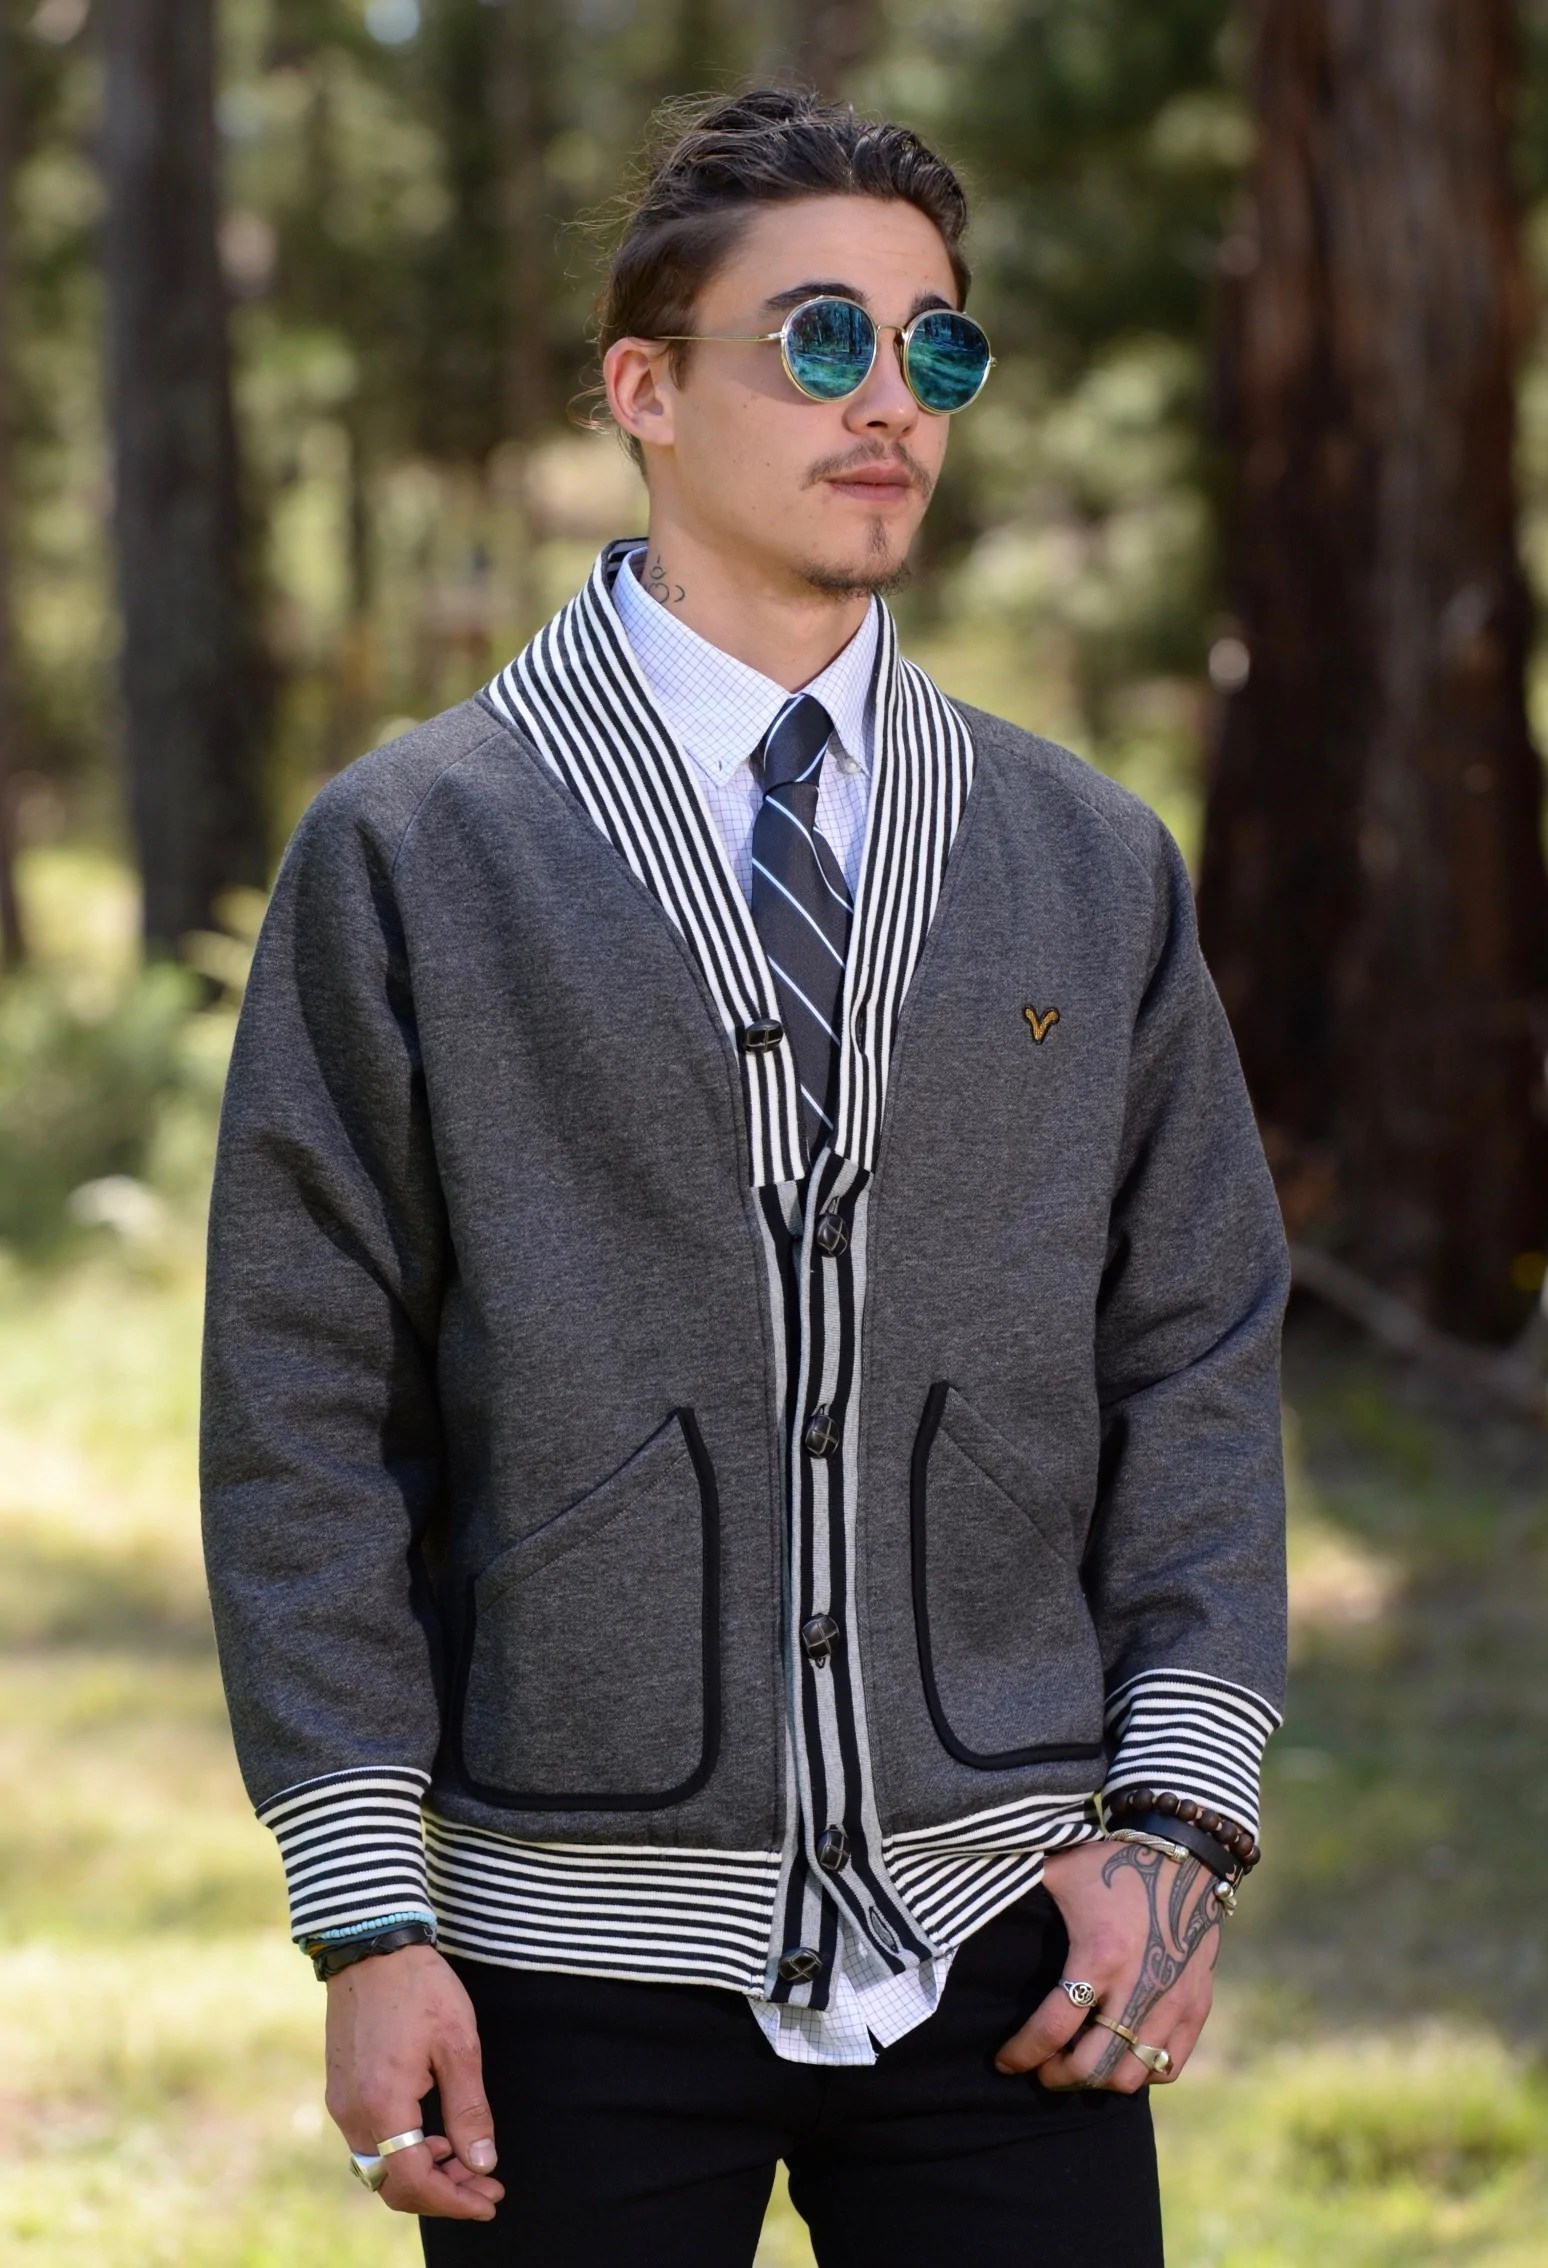 Vintage Look Men's Vintage Style Cardigan With Stripes